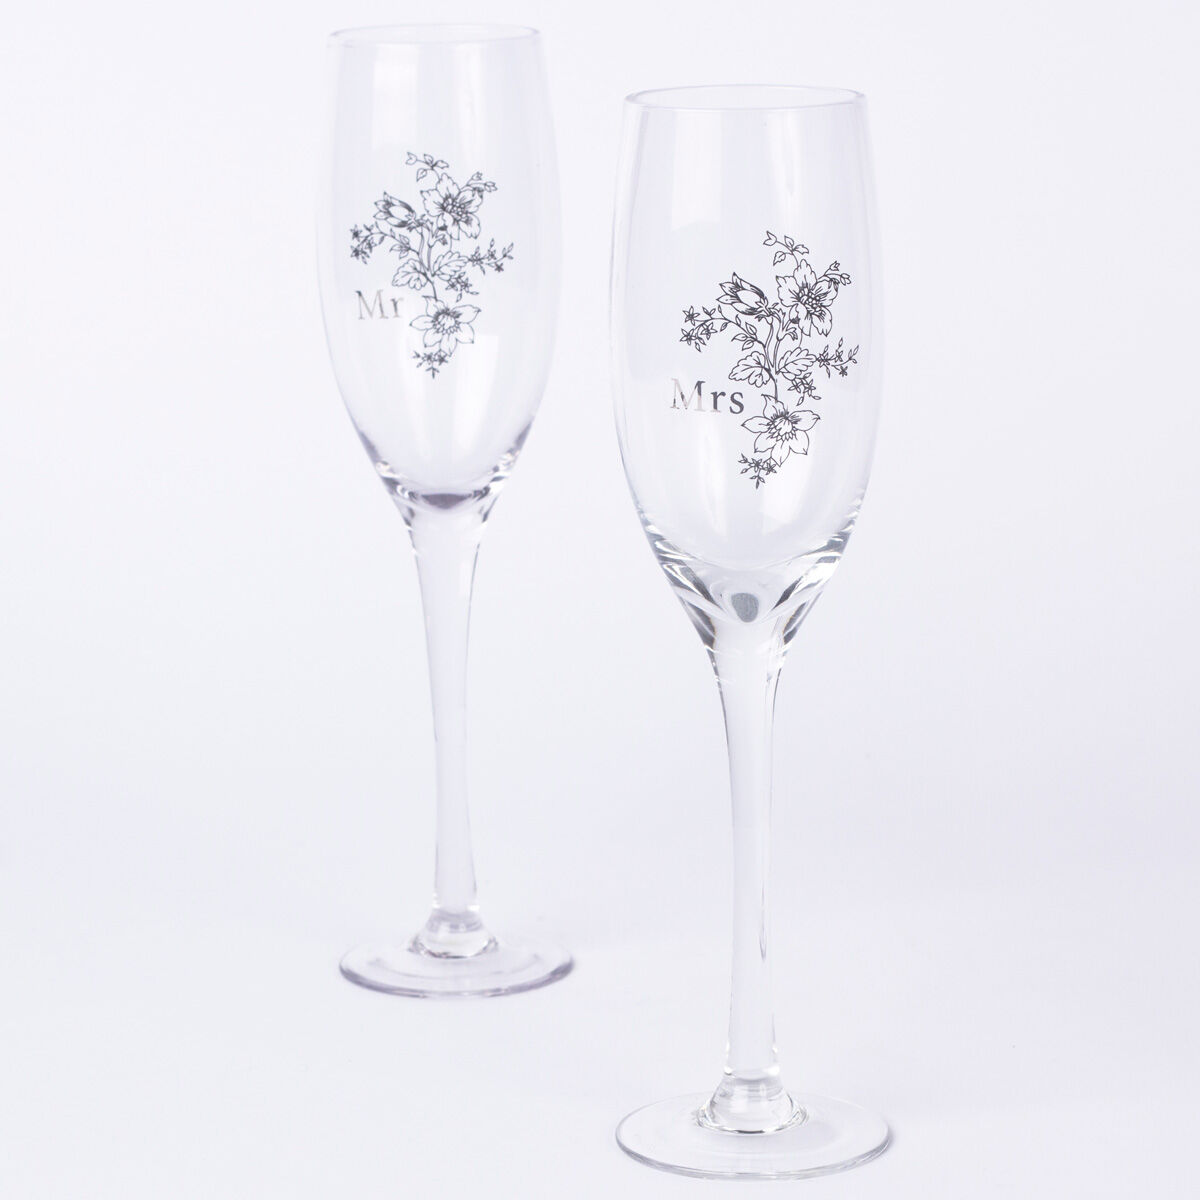 Pint Glasses, Wine Glasses & Tankards as Gifts from £3.99